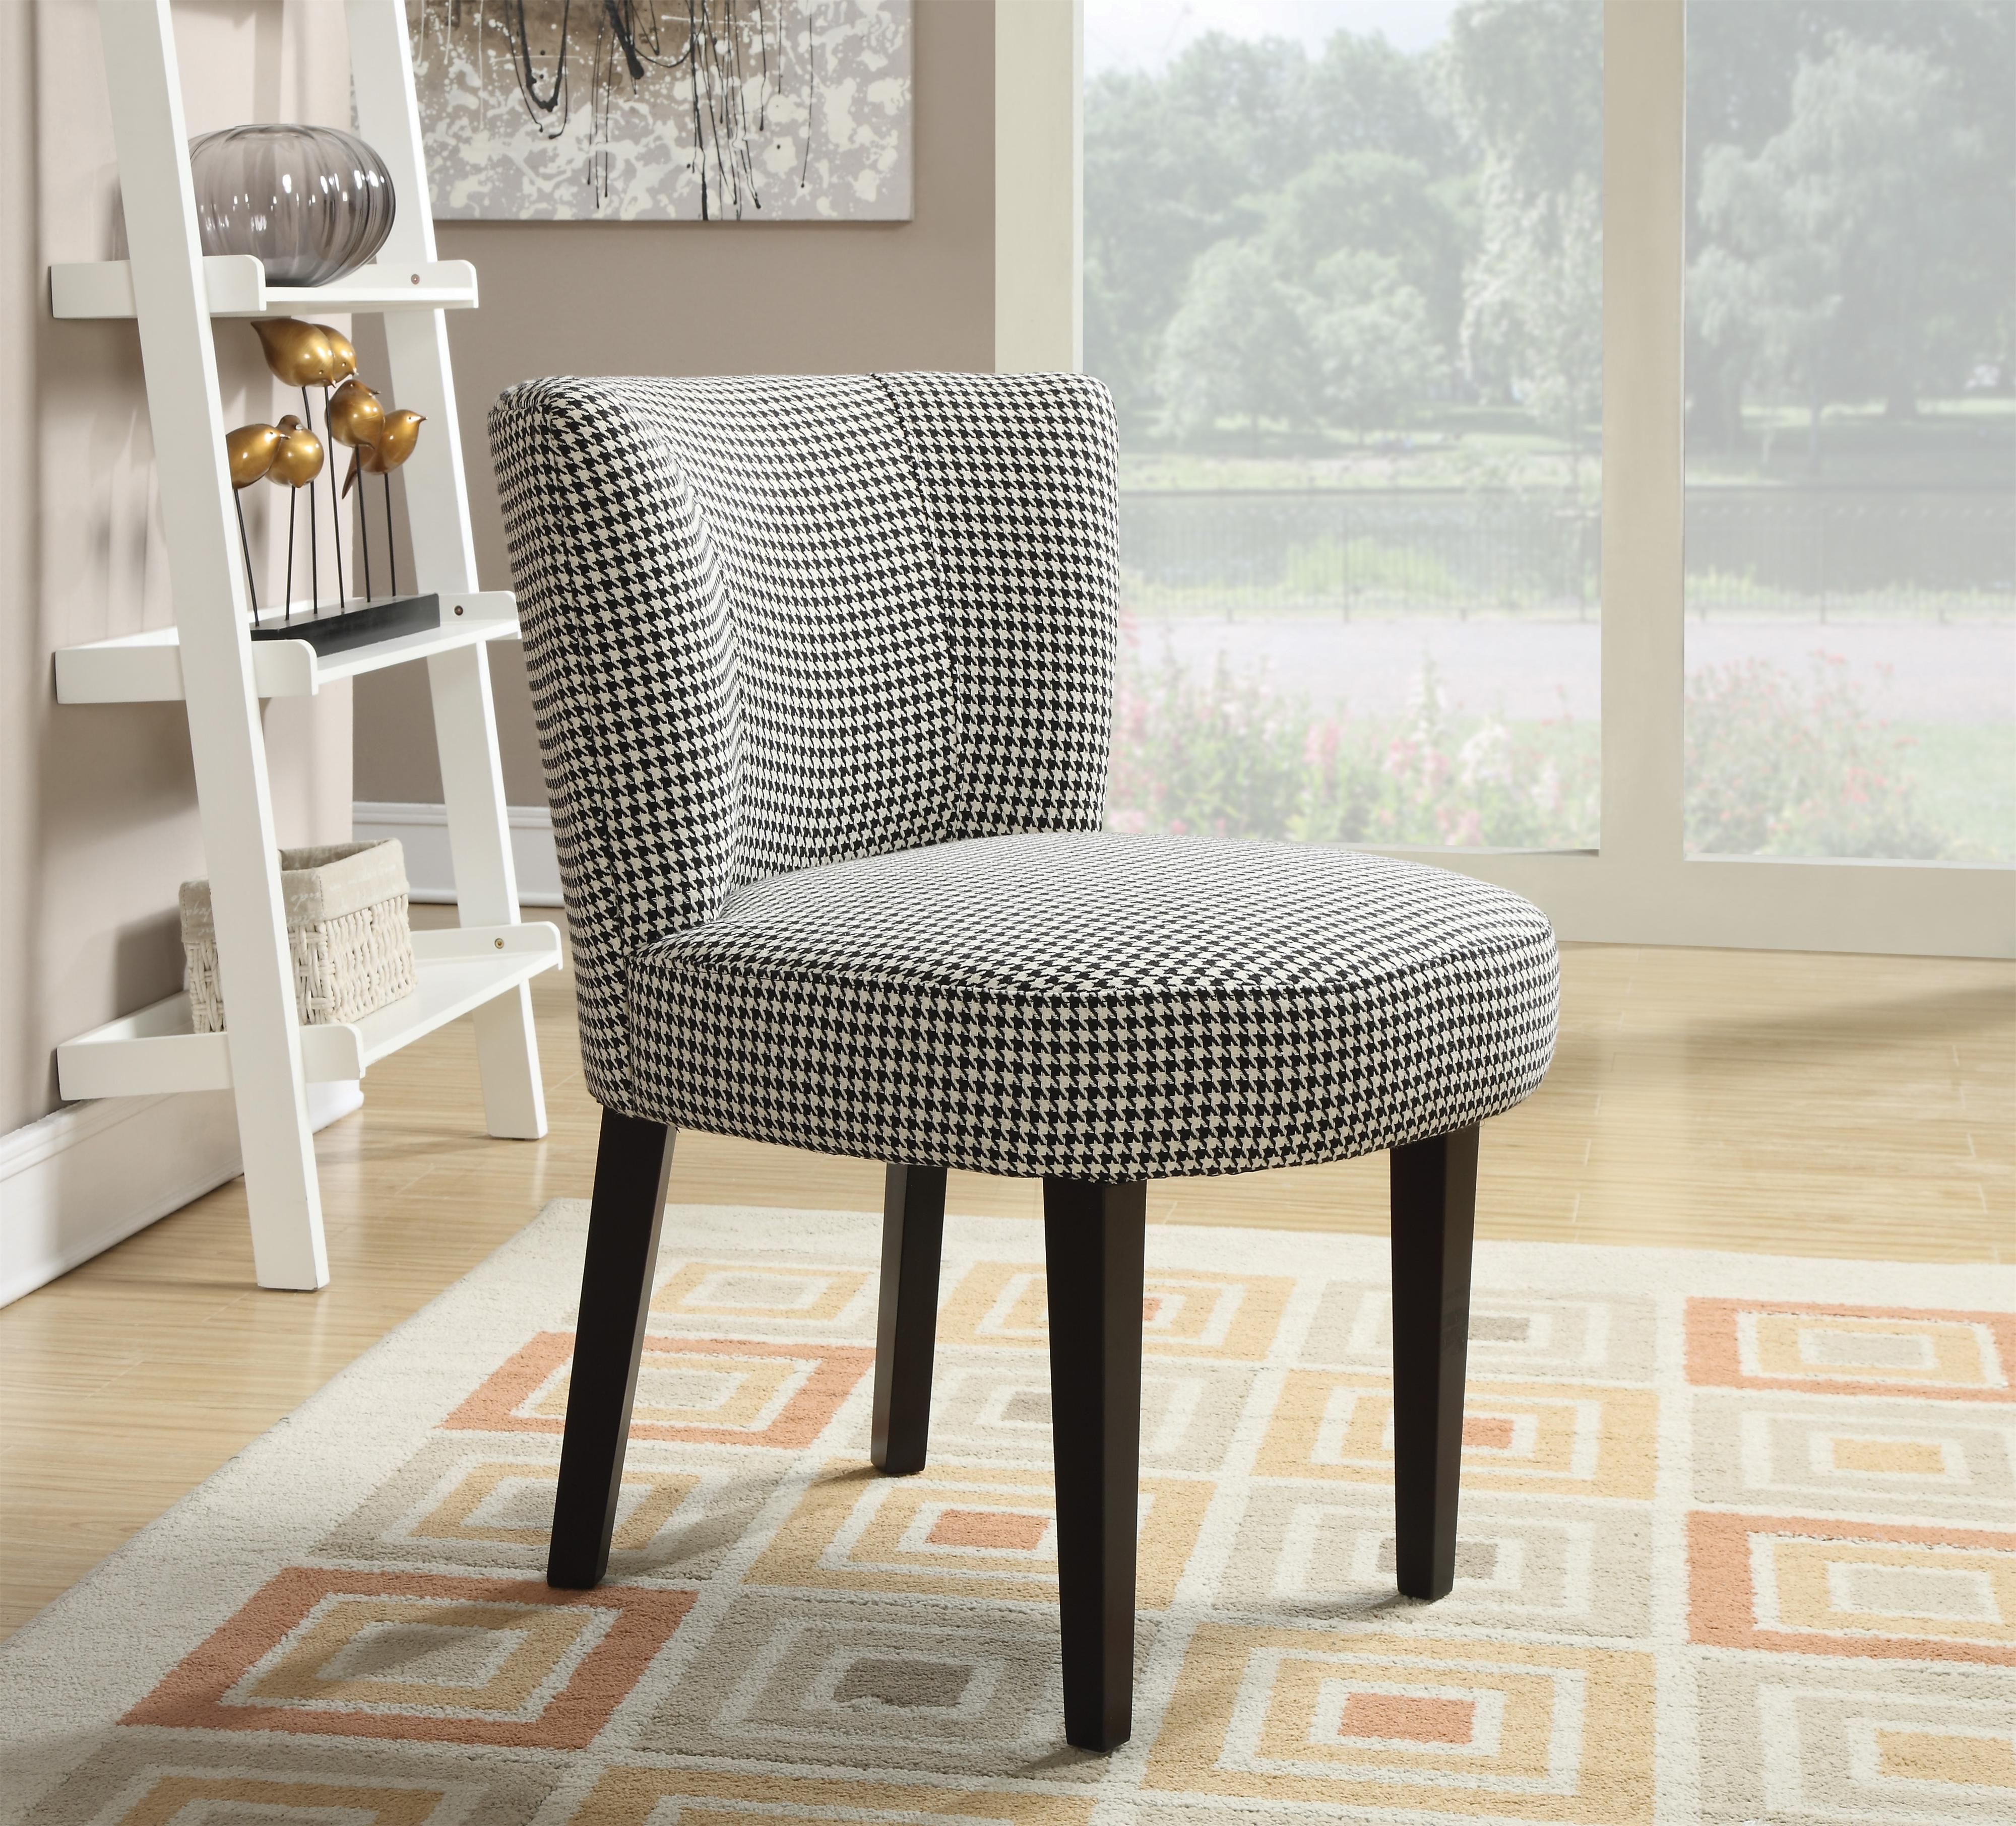 Best With A Classic Black And White Houndstooth Fabric This 400 x 300